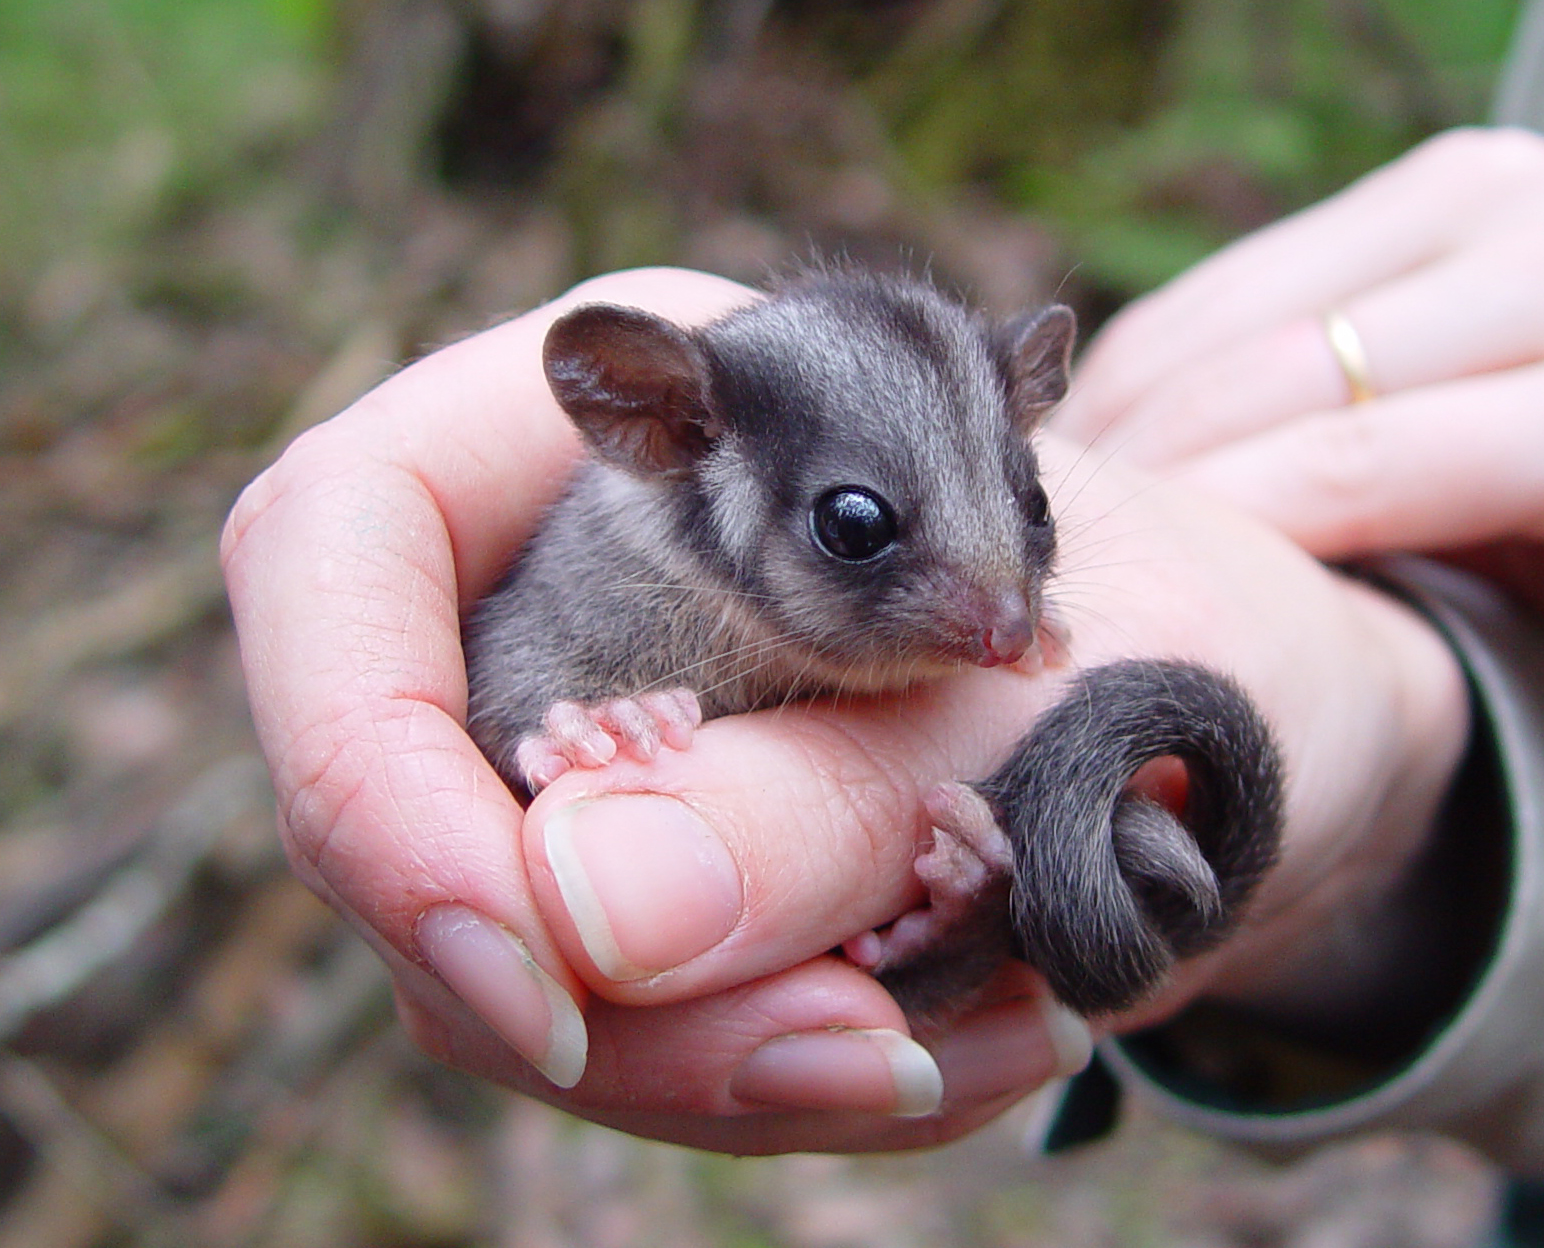 Leadbeater's Possum faces extinction if logging continues